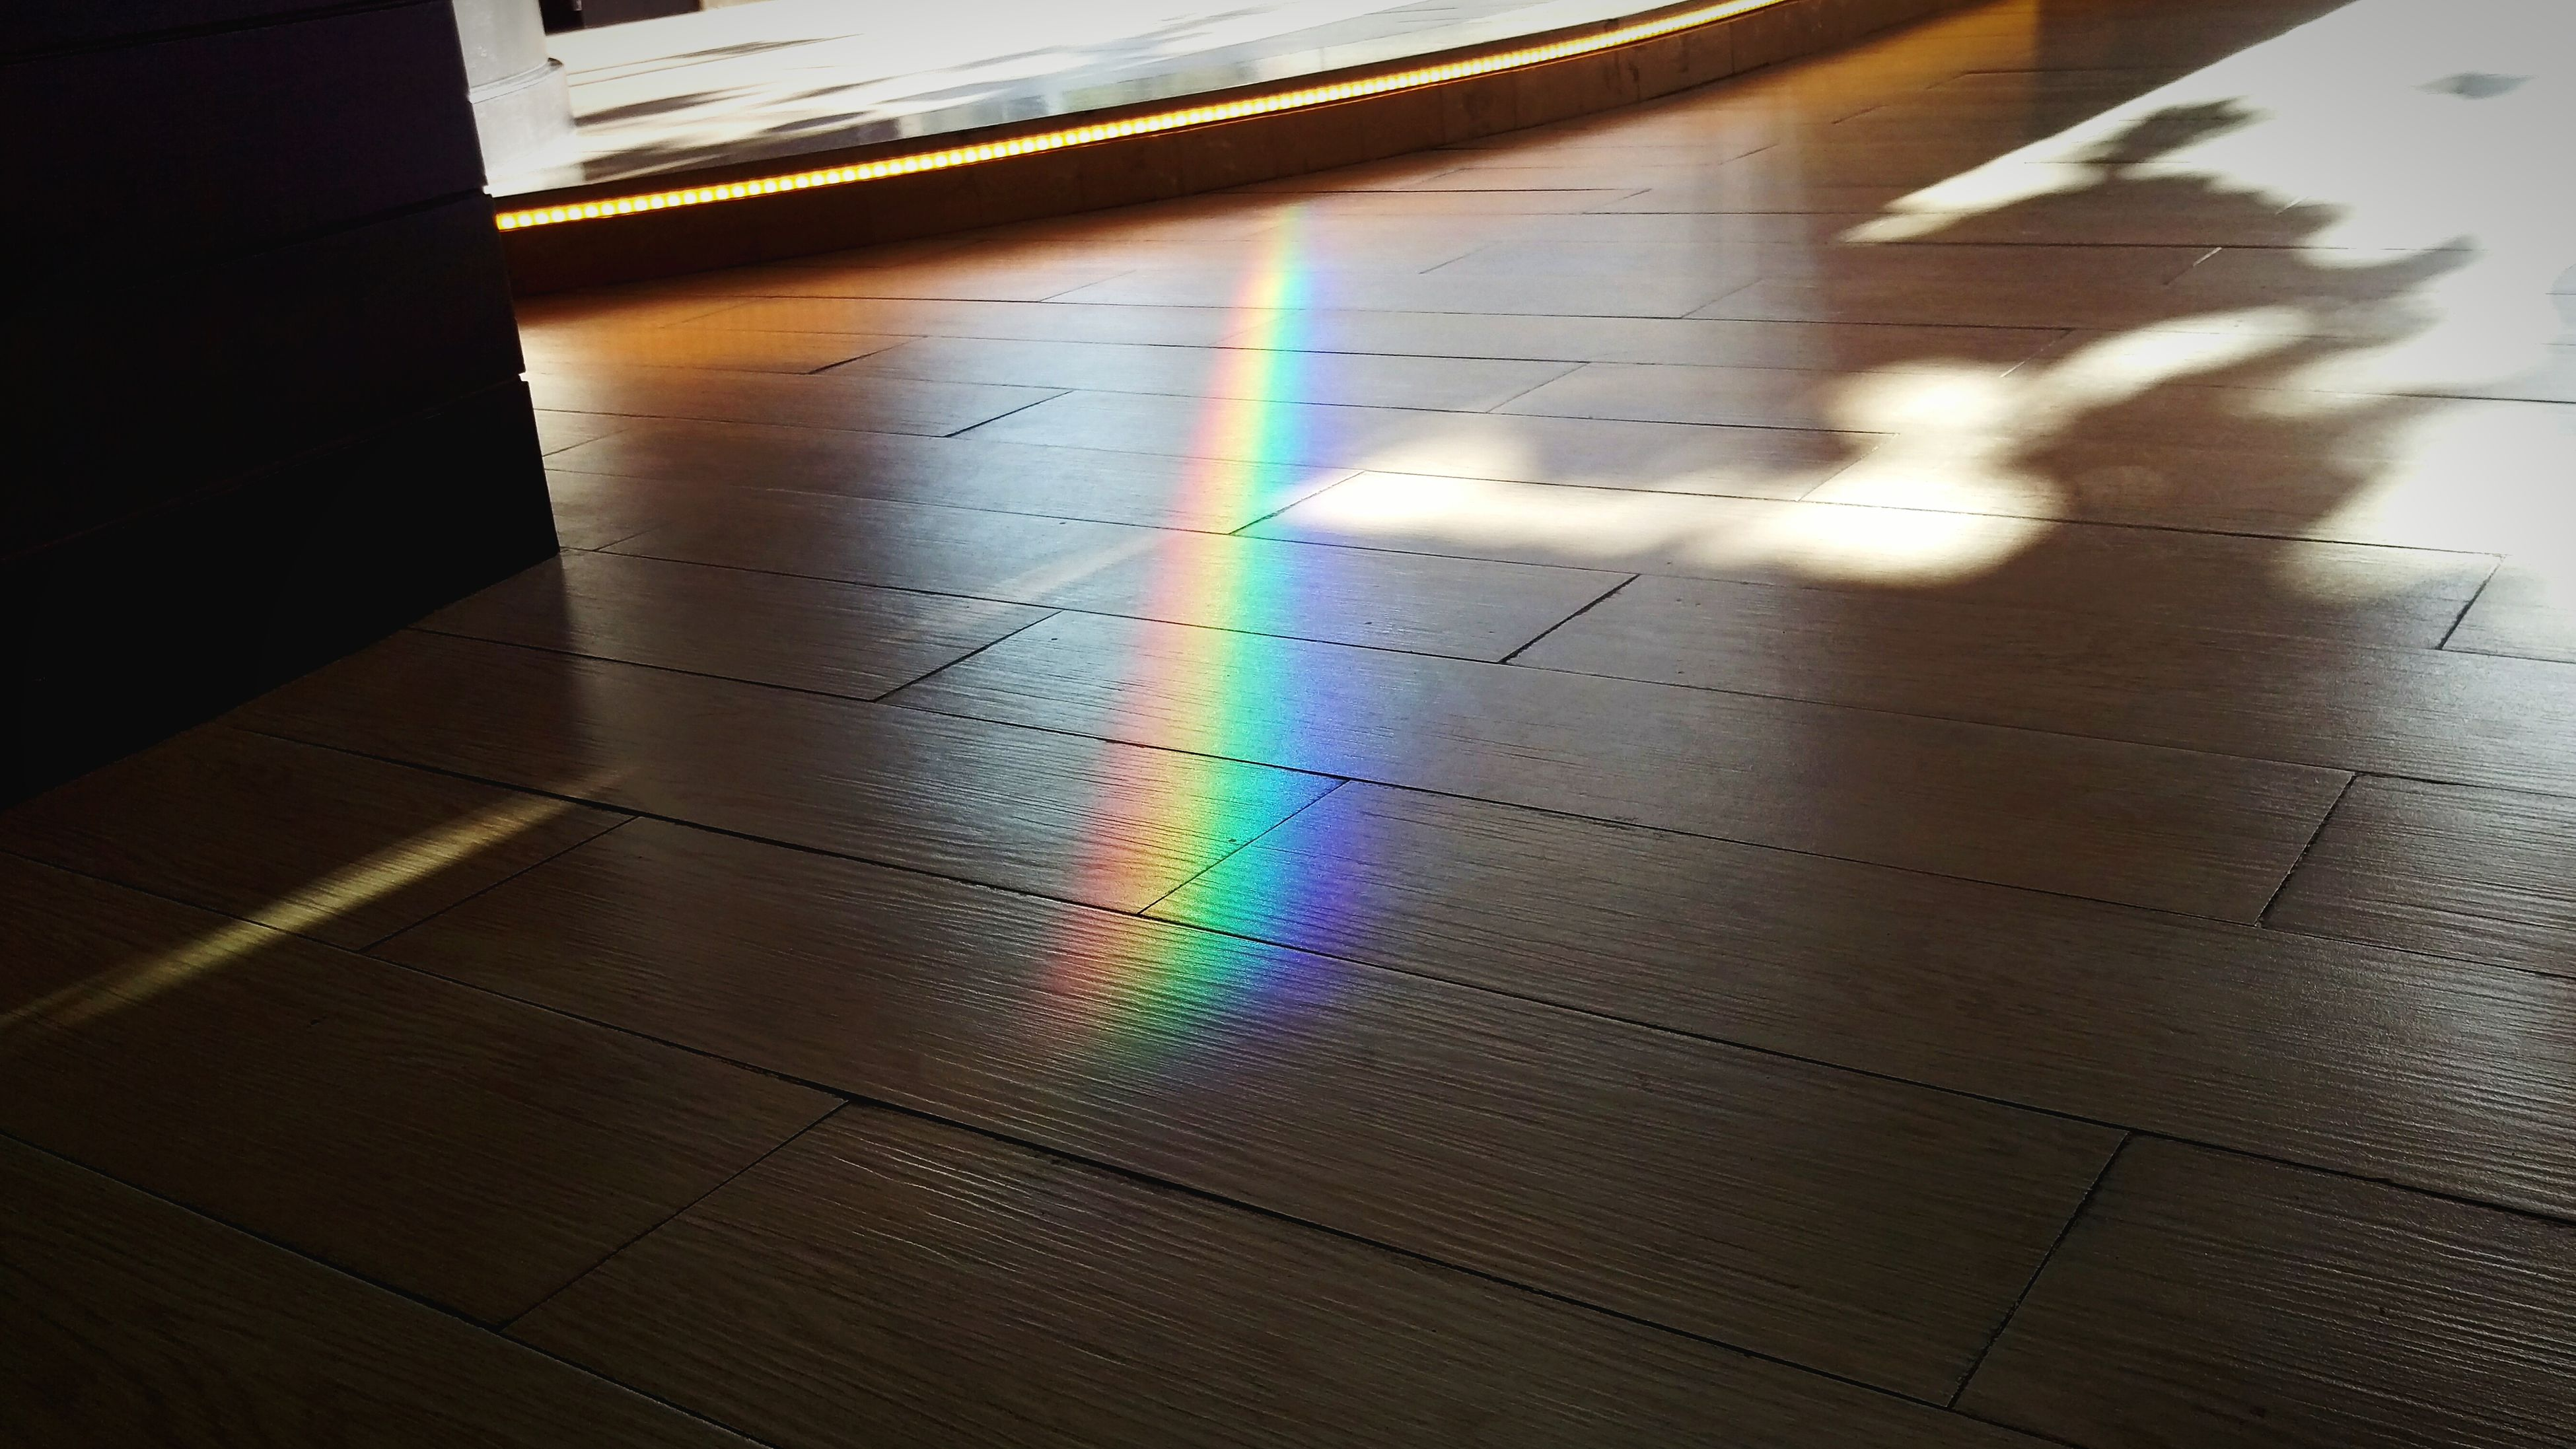 End of the rainbow ends in osaka beirut peacful japanese resto First Eyeem Photo